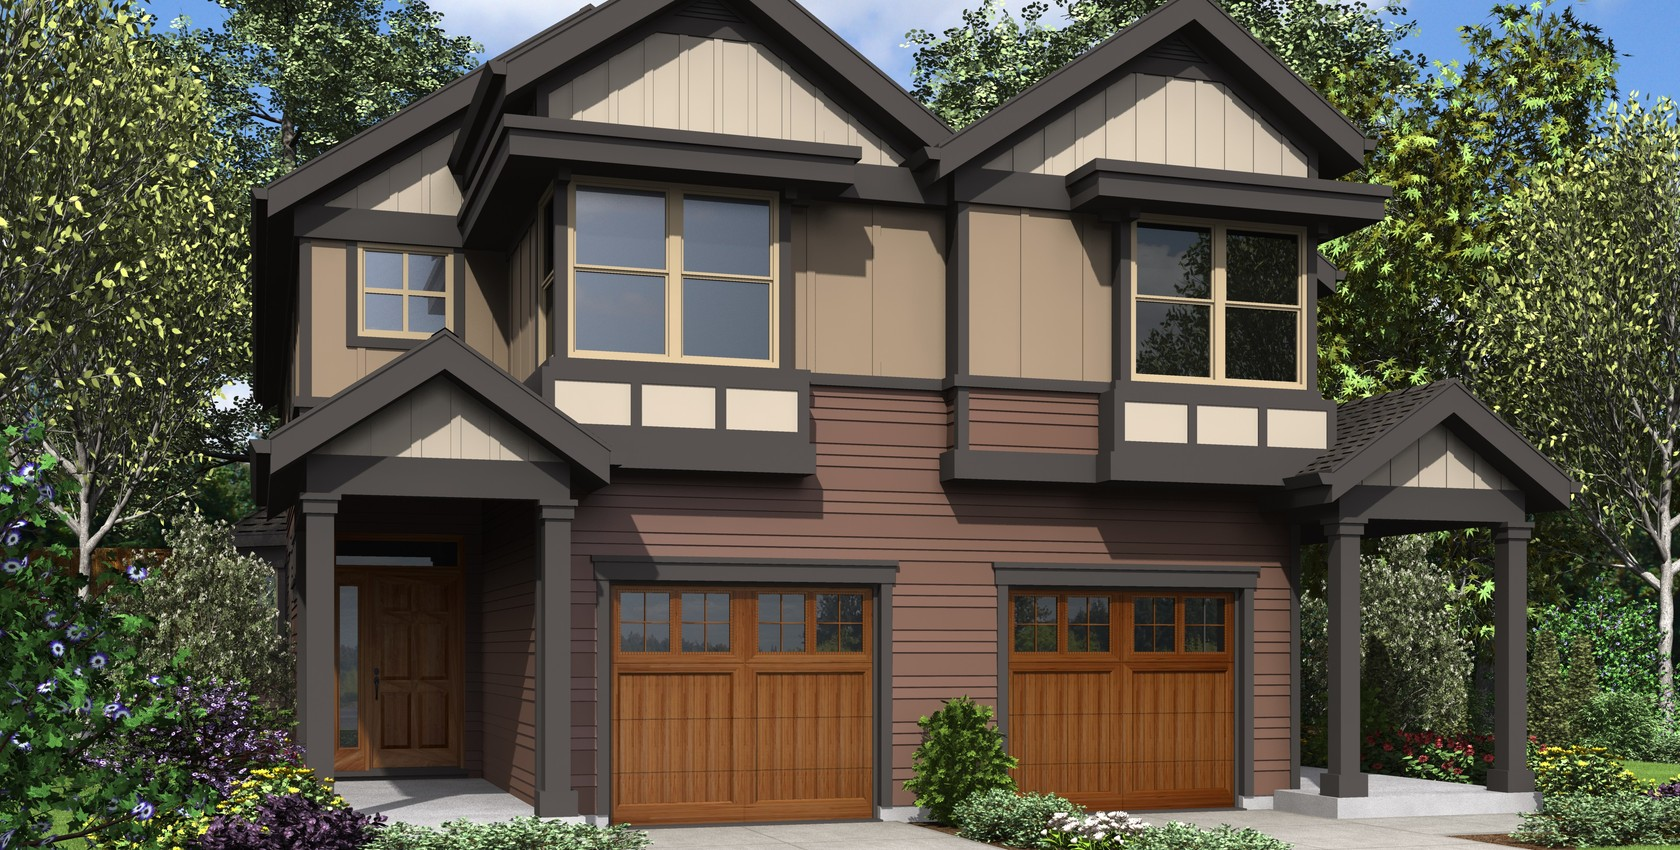 Image for Cascades-Well proportioned Spaces with Great Personal Areas-8481